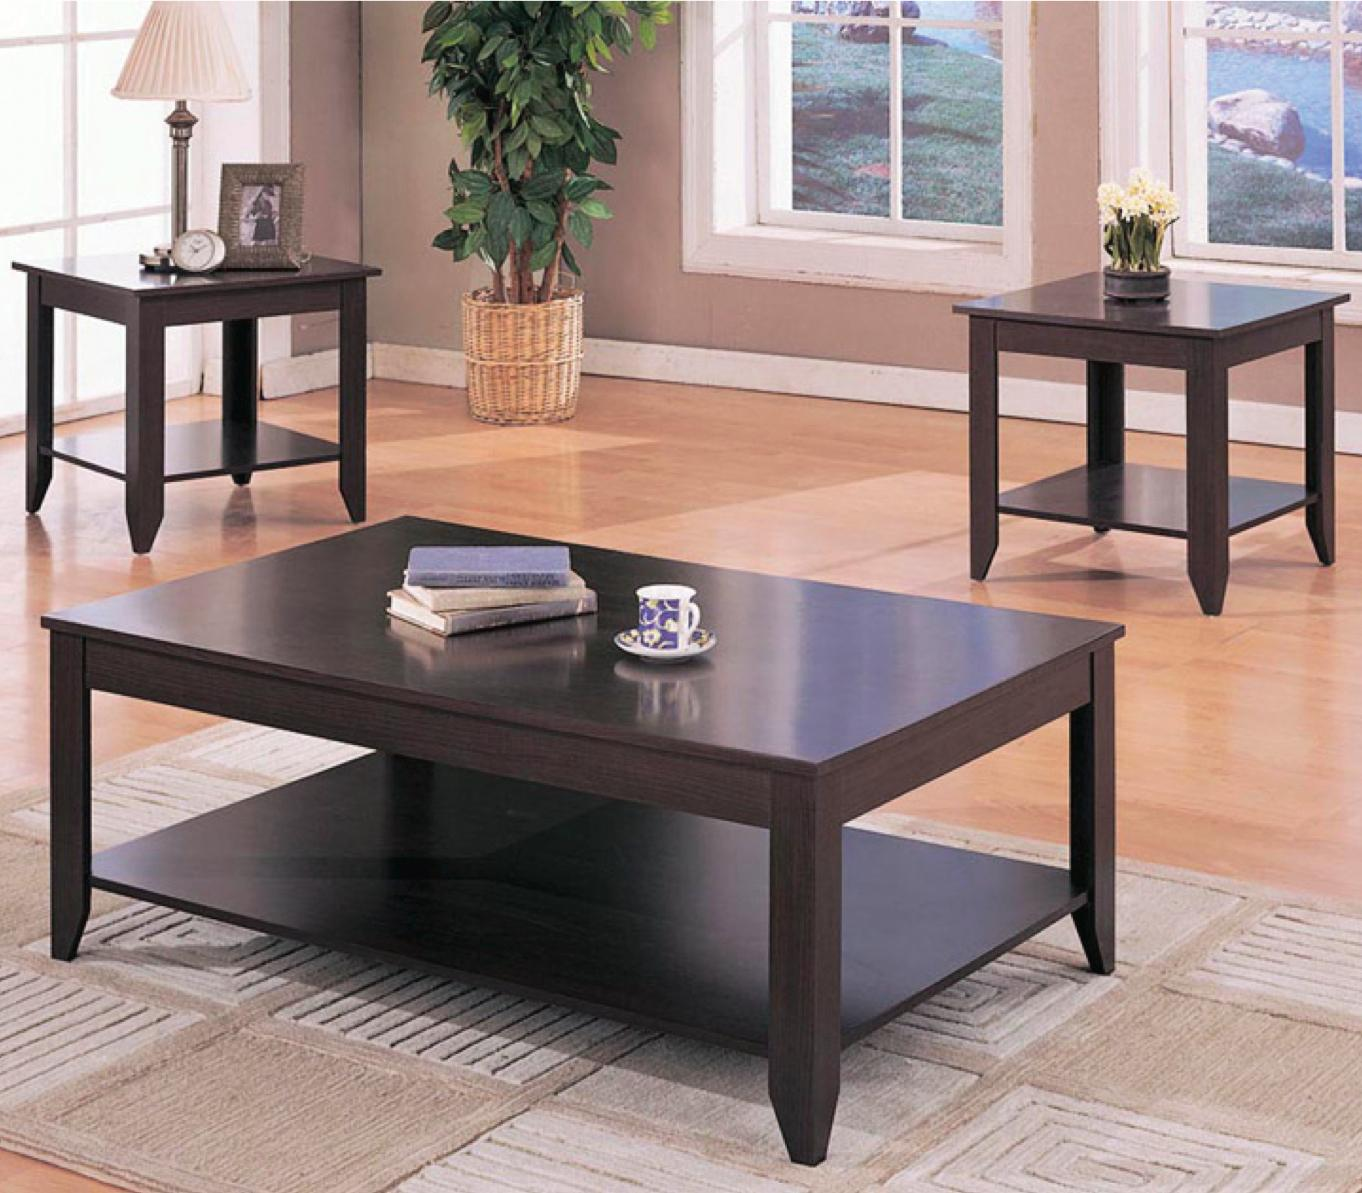 Occasional Table Sets 3 Piece Table Set by Coaster at Prime Brothers Furniture